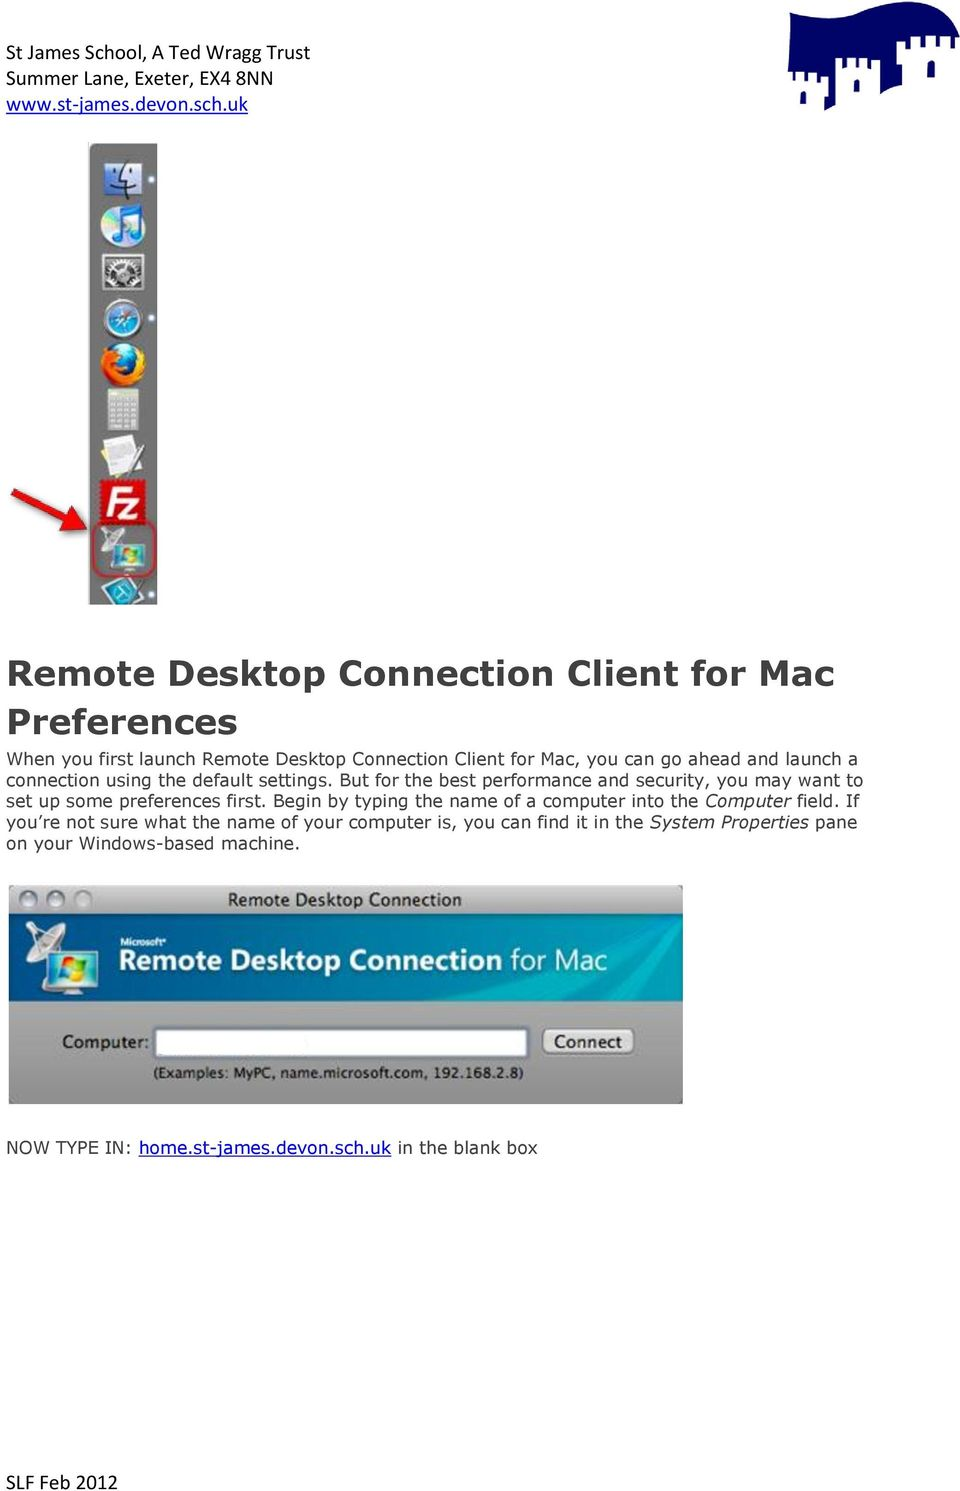 Installing and Configuring Remote Desktop Connection Client